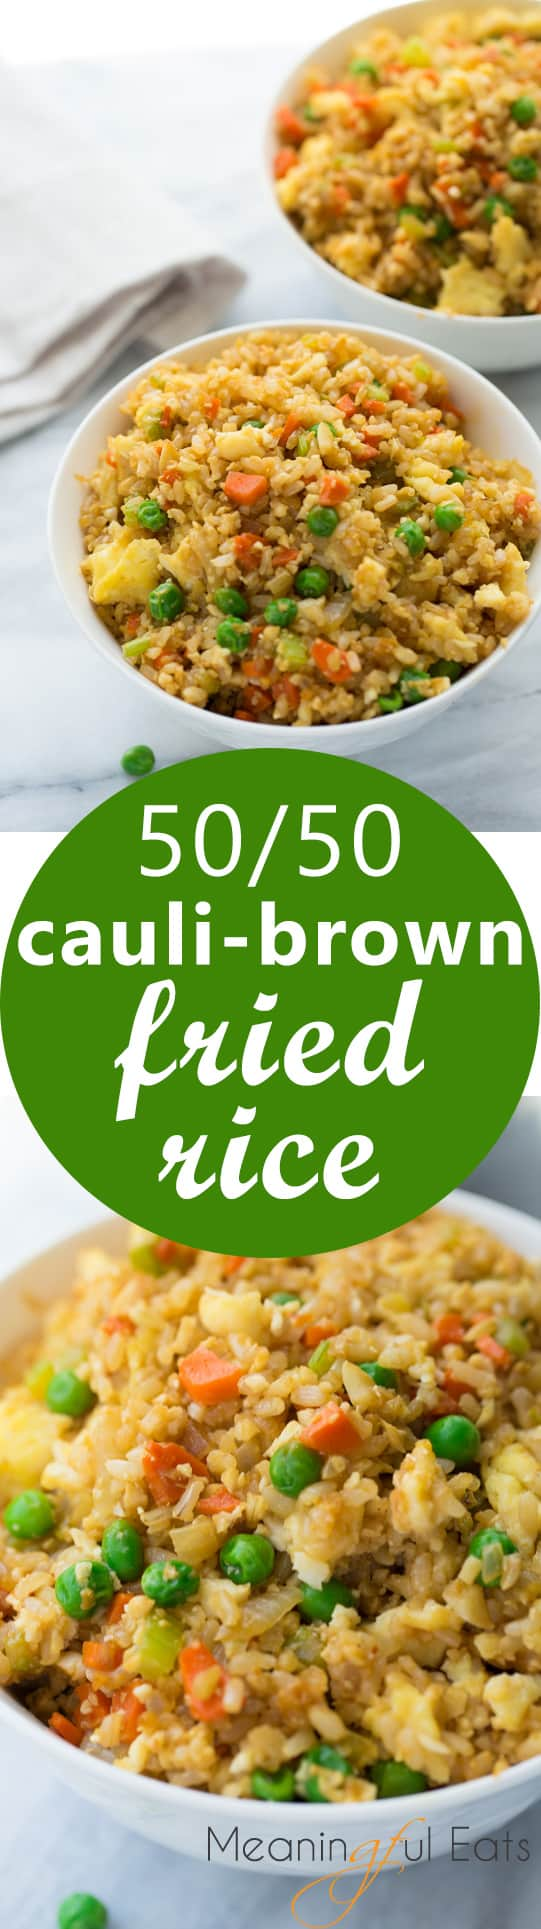 50/50 Cauli-Brown Rice Fried Rice! An easy fried rice made of 1/2 cooked brown rice and 1/2 cauliflower rice. One of my go-to healthy dinners! Easy, kid-friendly, yummy.